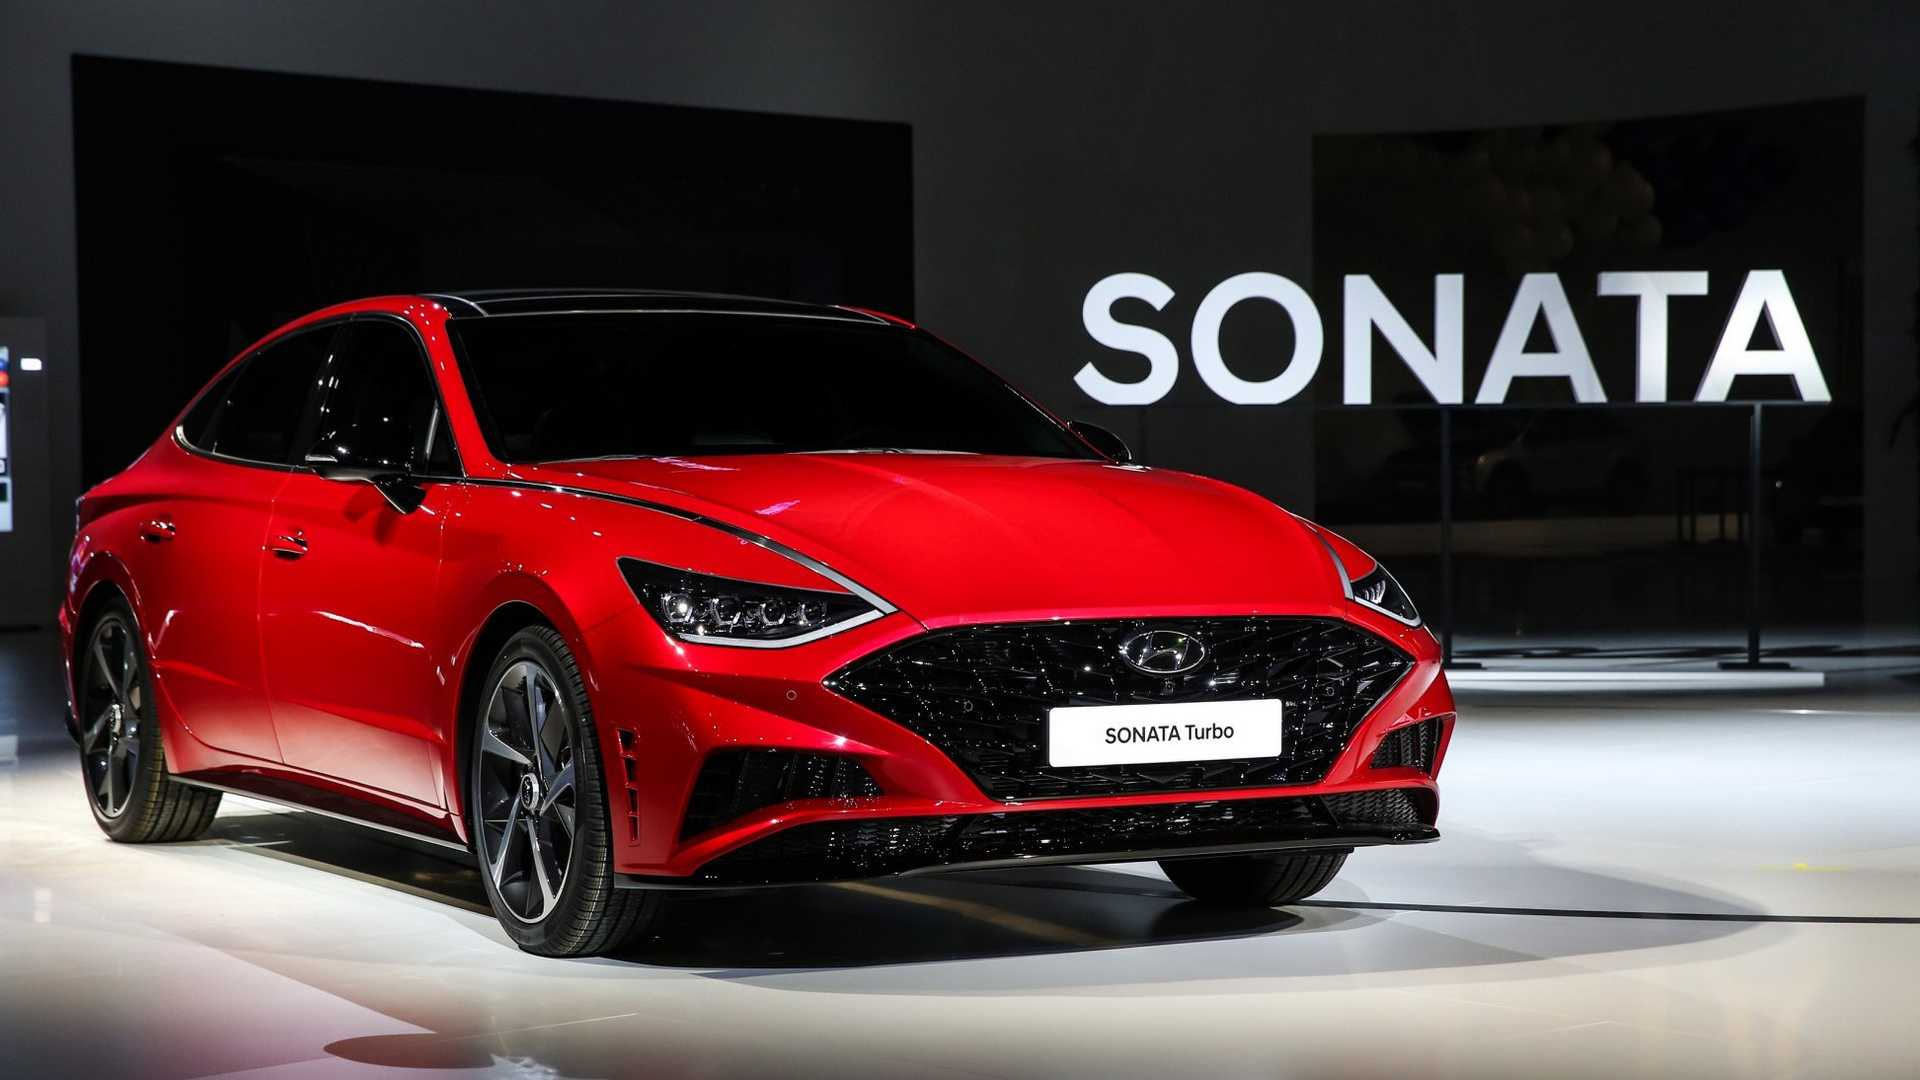 36 New 2020 Hyundai Sonata Yellow Price Design And Review